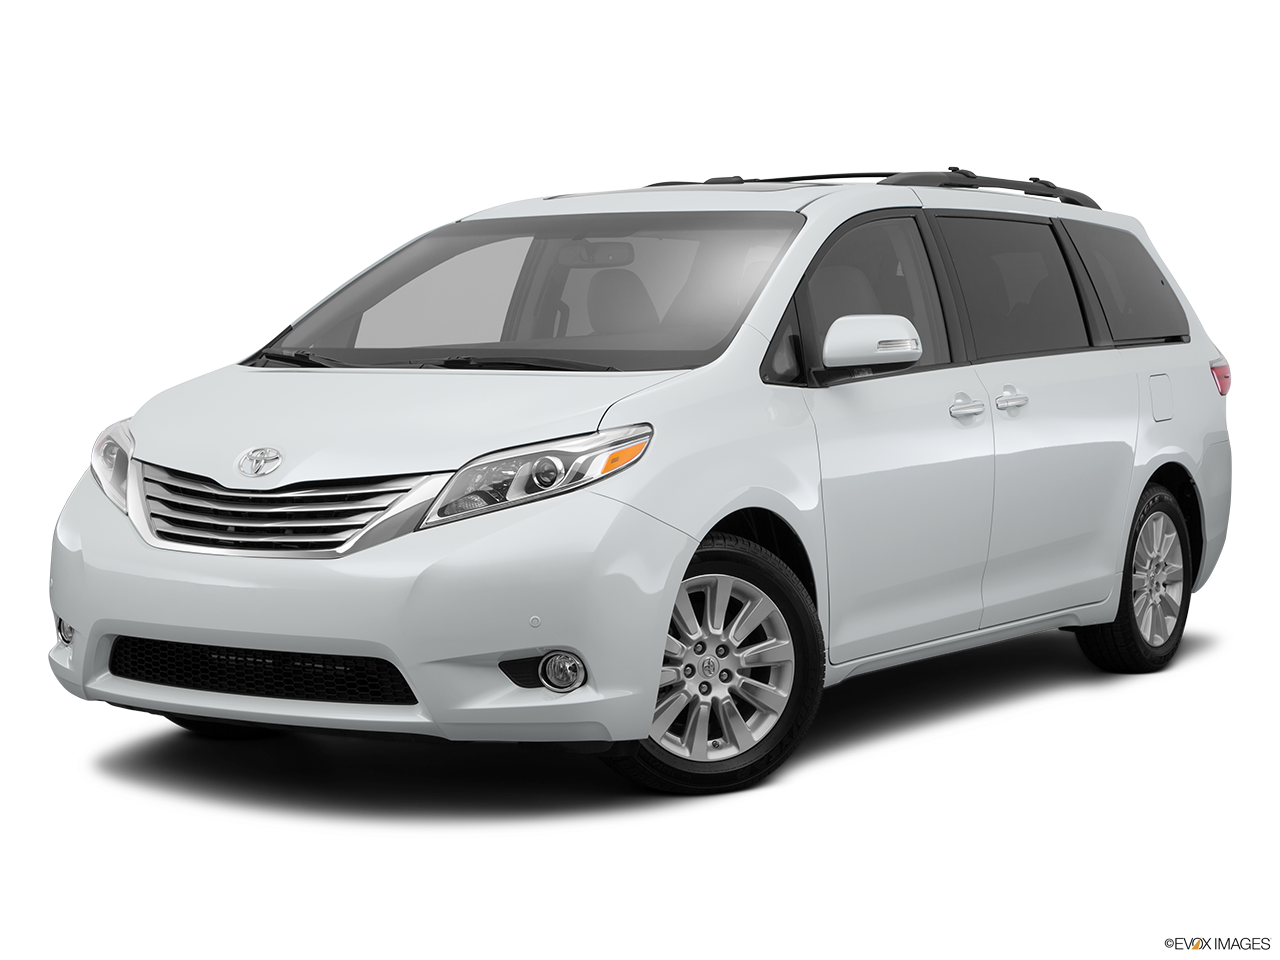 2015 toyota sienna hampton roads casey toyota casey toyota. Black Bedroom Furniture Sets. Home Design Ideas